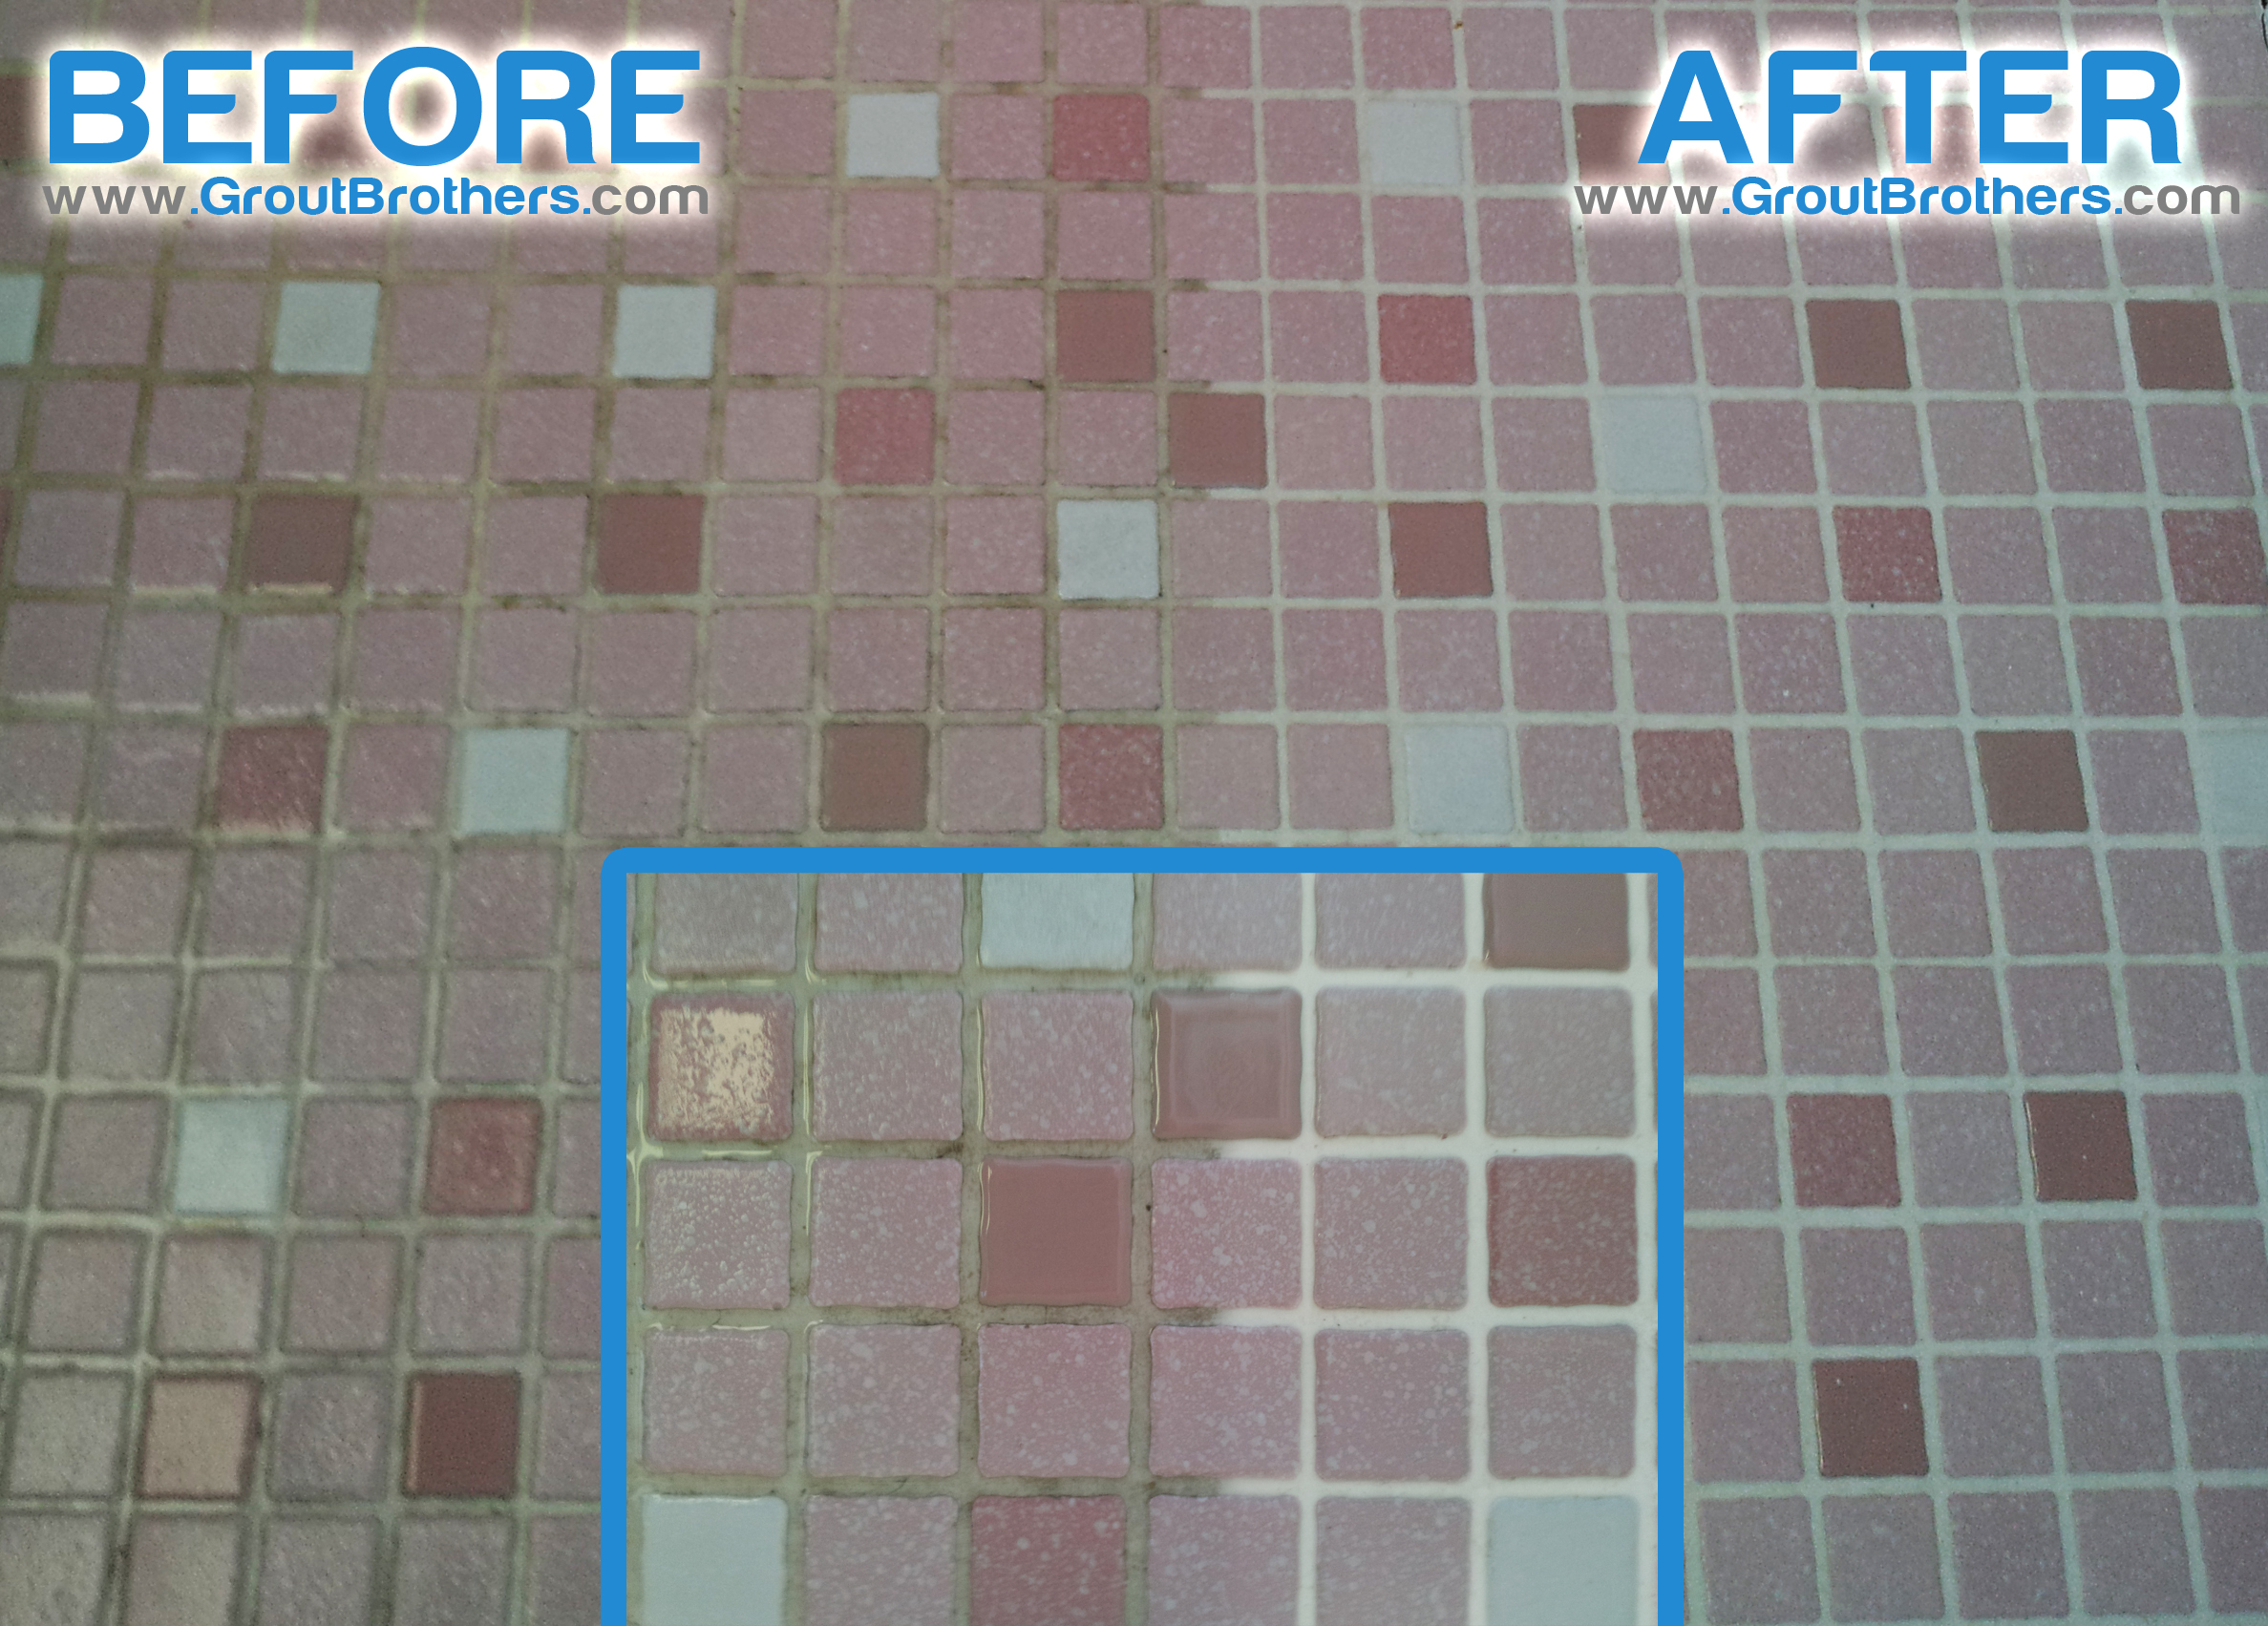 Professional Tile And Grout Cleaning Sarasota Fl Grout Brothers